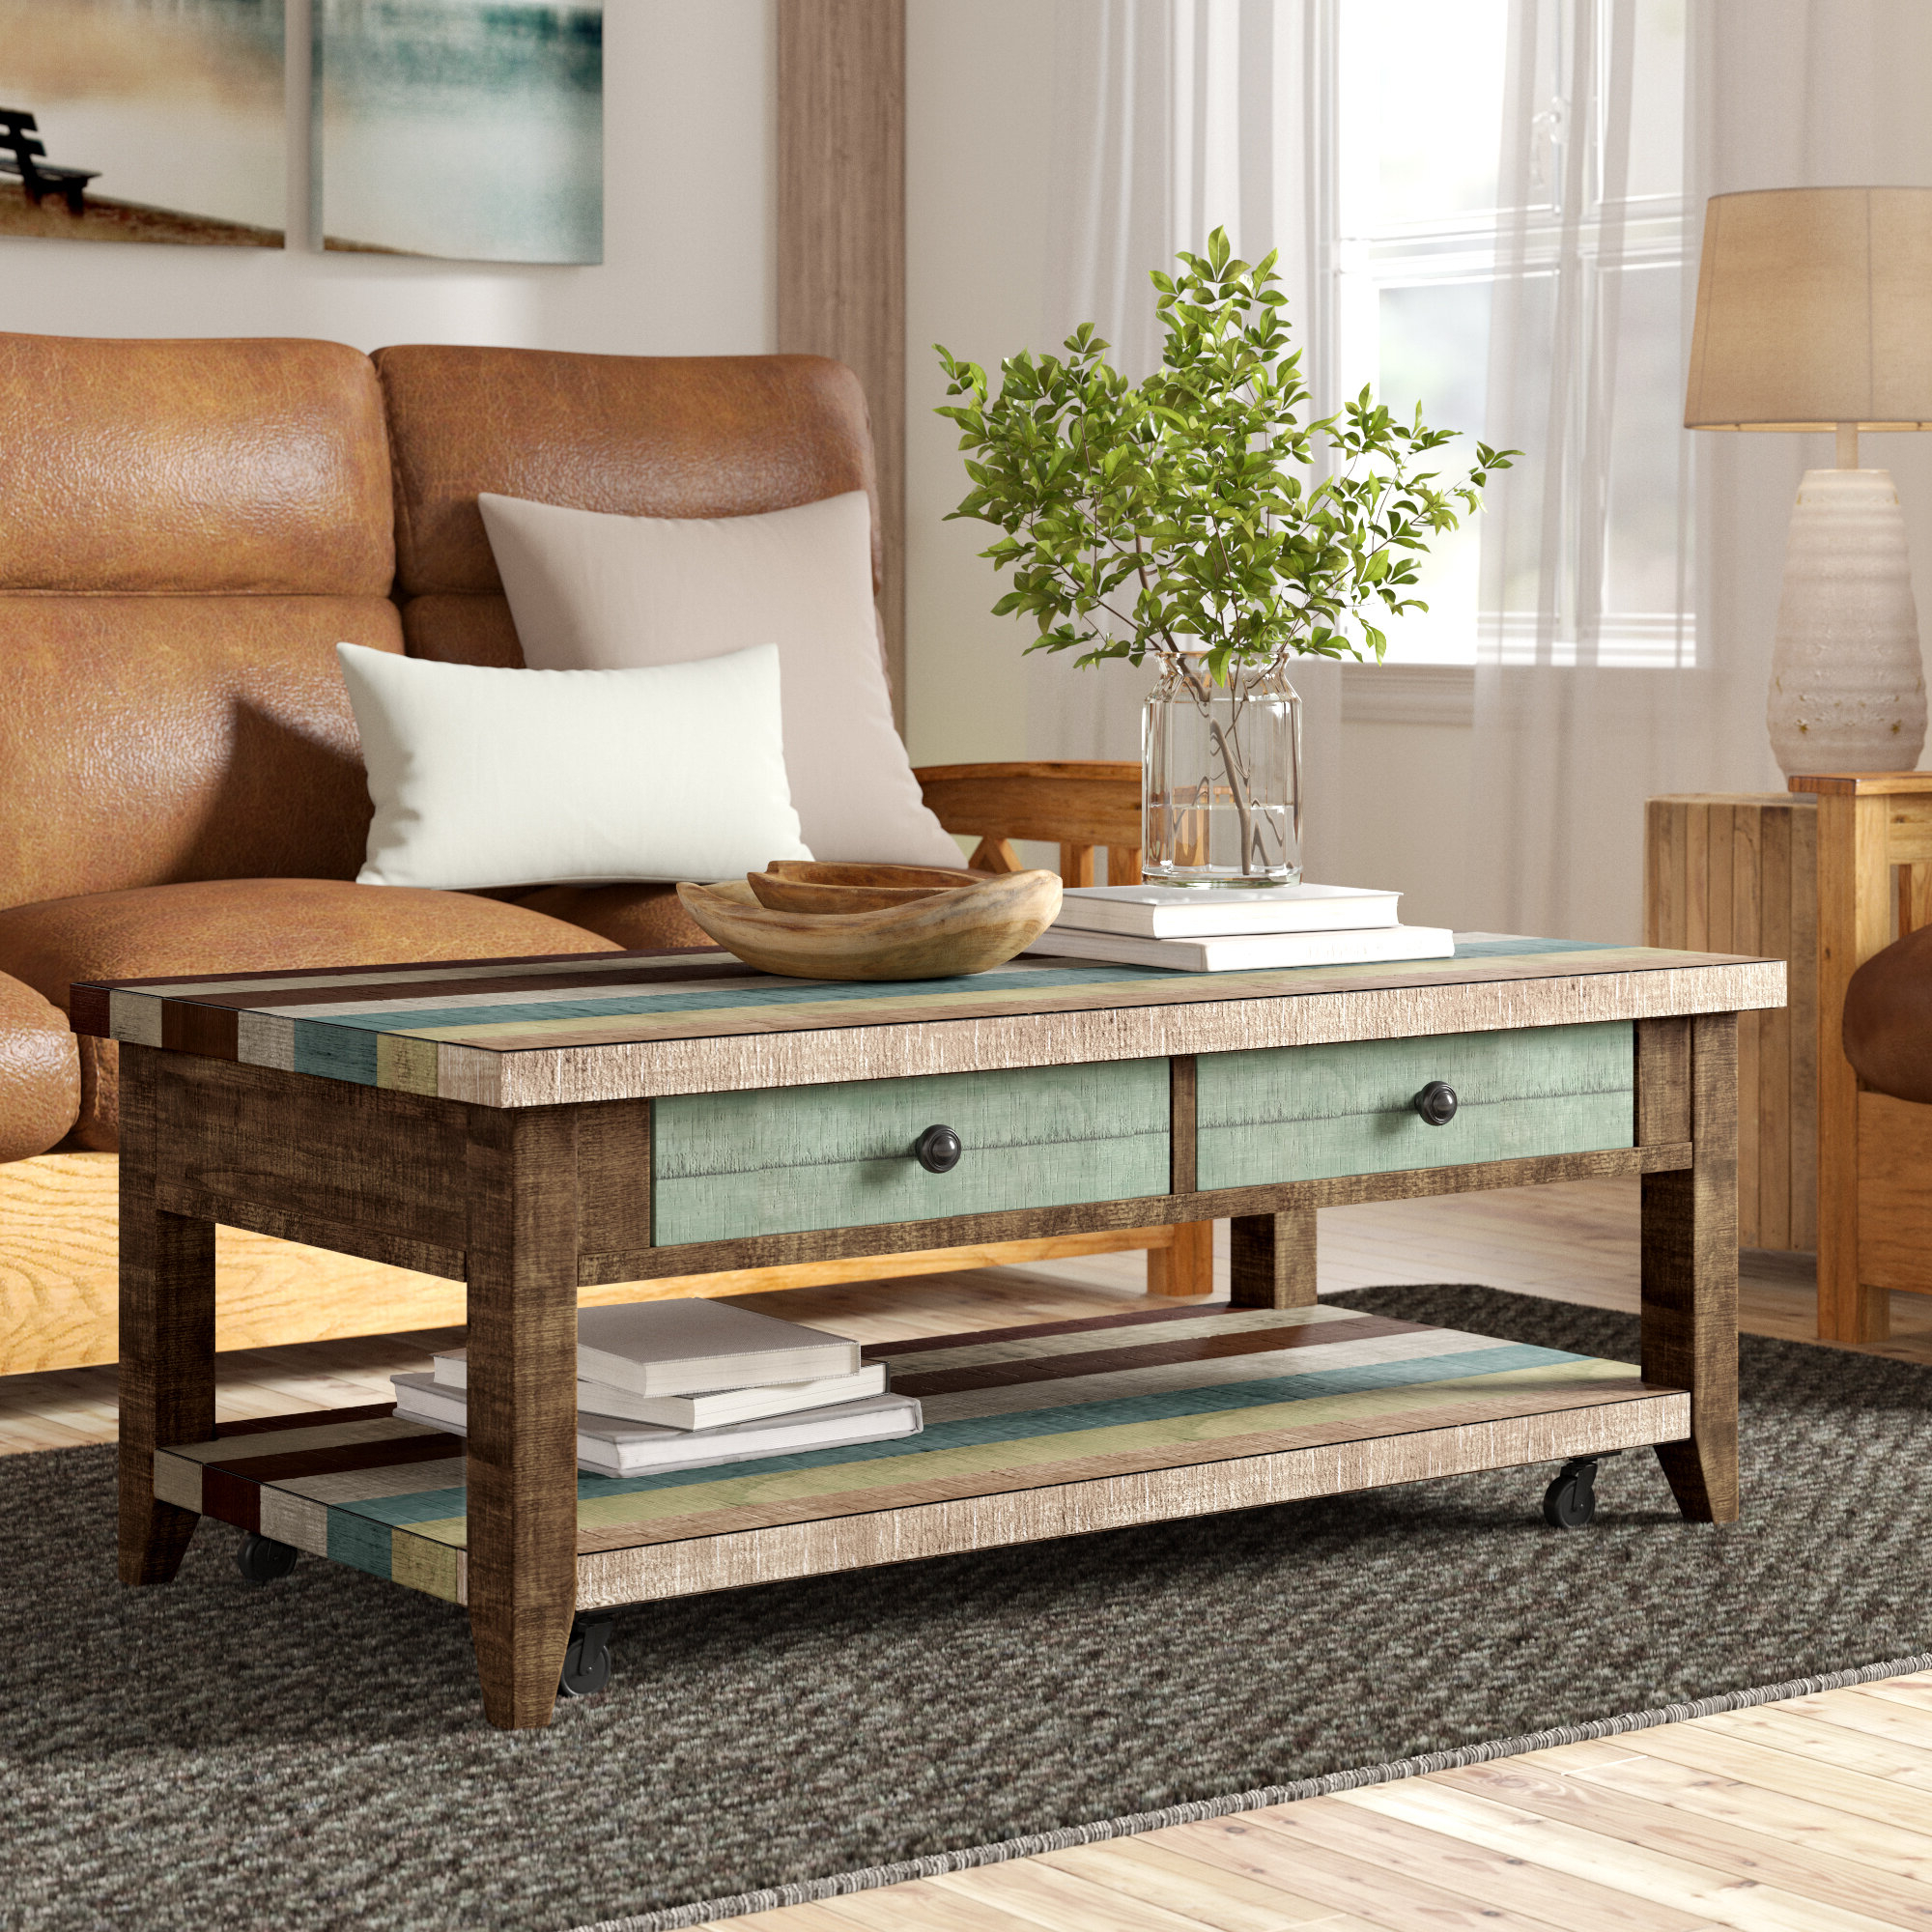 Wayfair Throughout Most Up To Date Carbon Loft Kenyon Natural Rustic Coffee Tables (View 17 of 20)